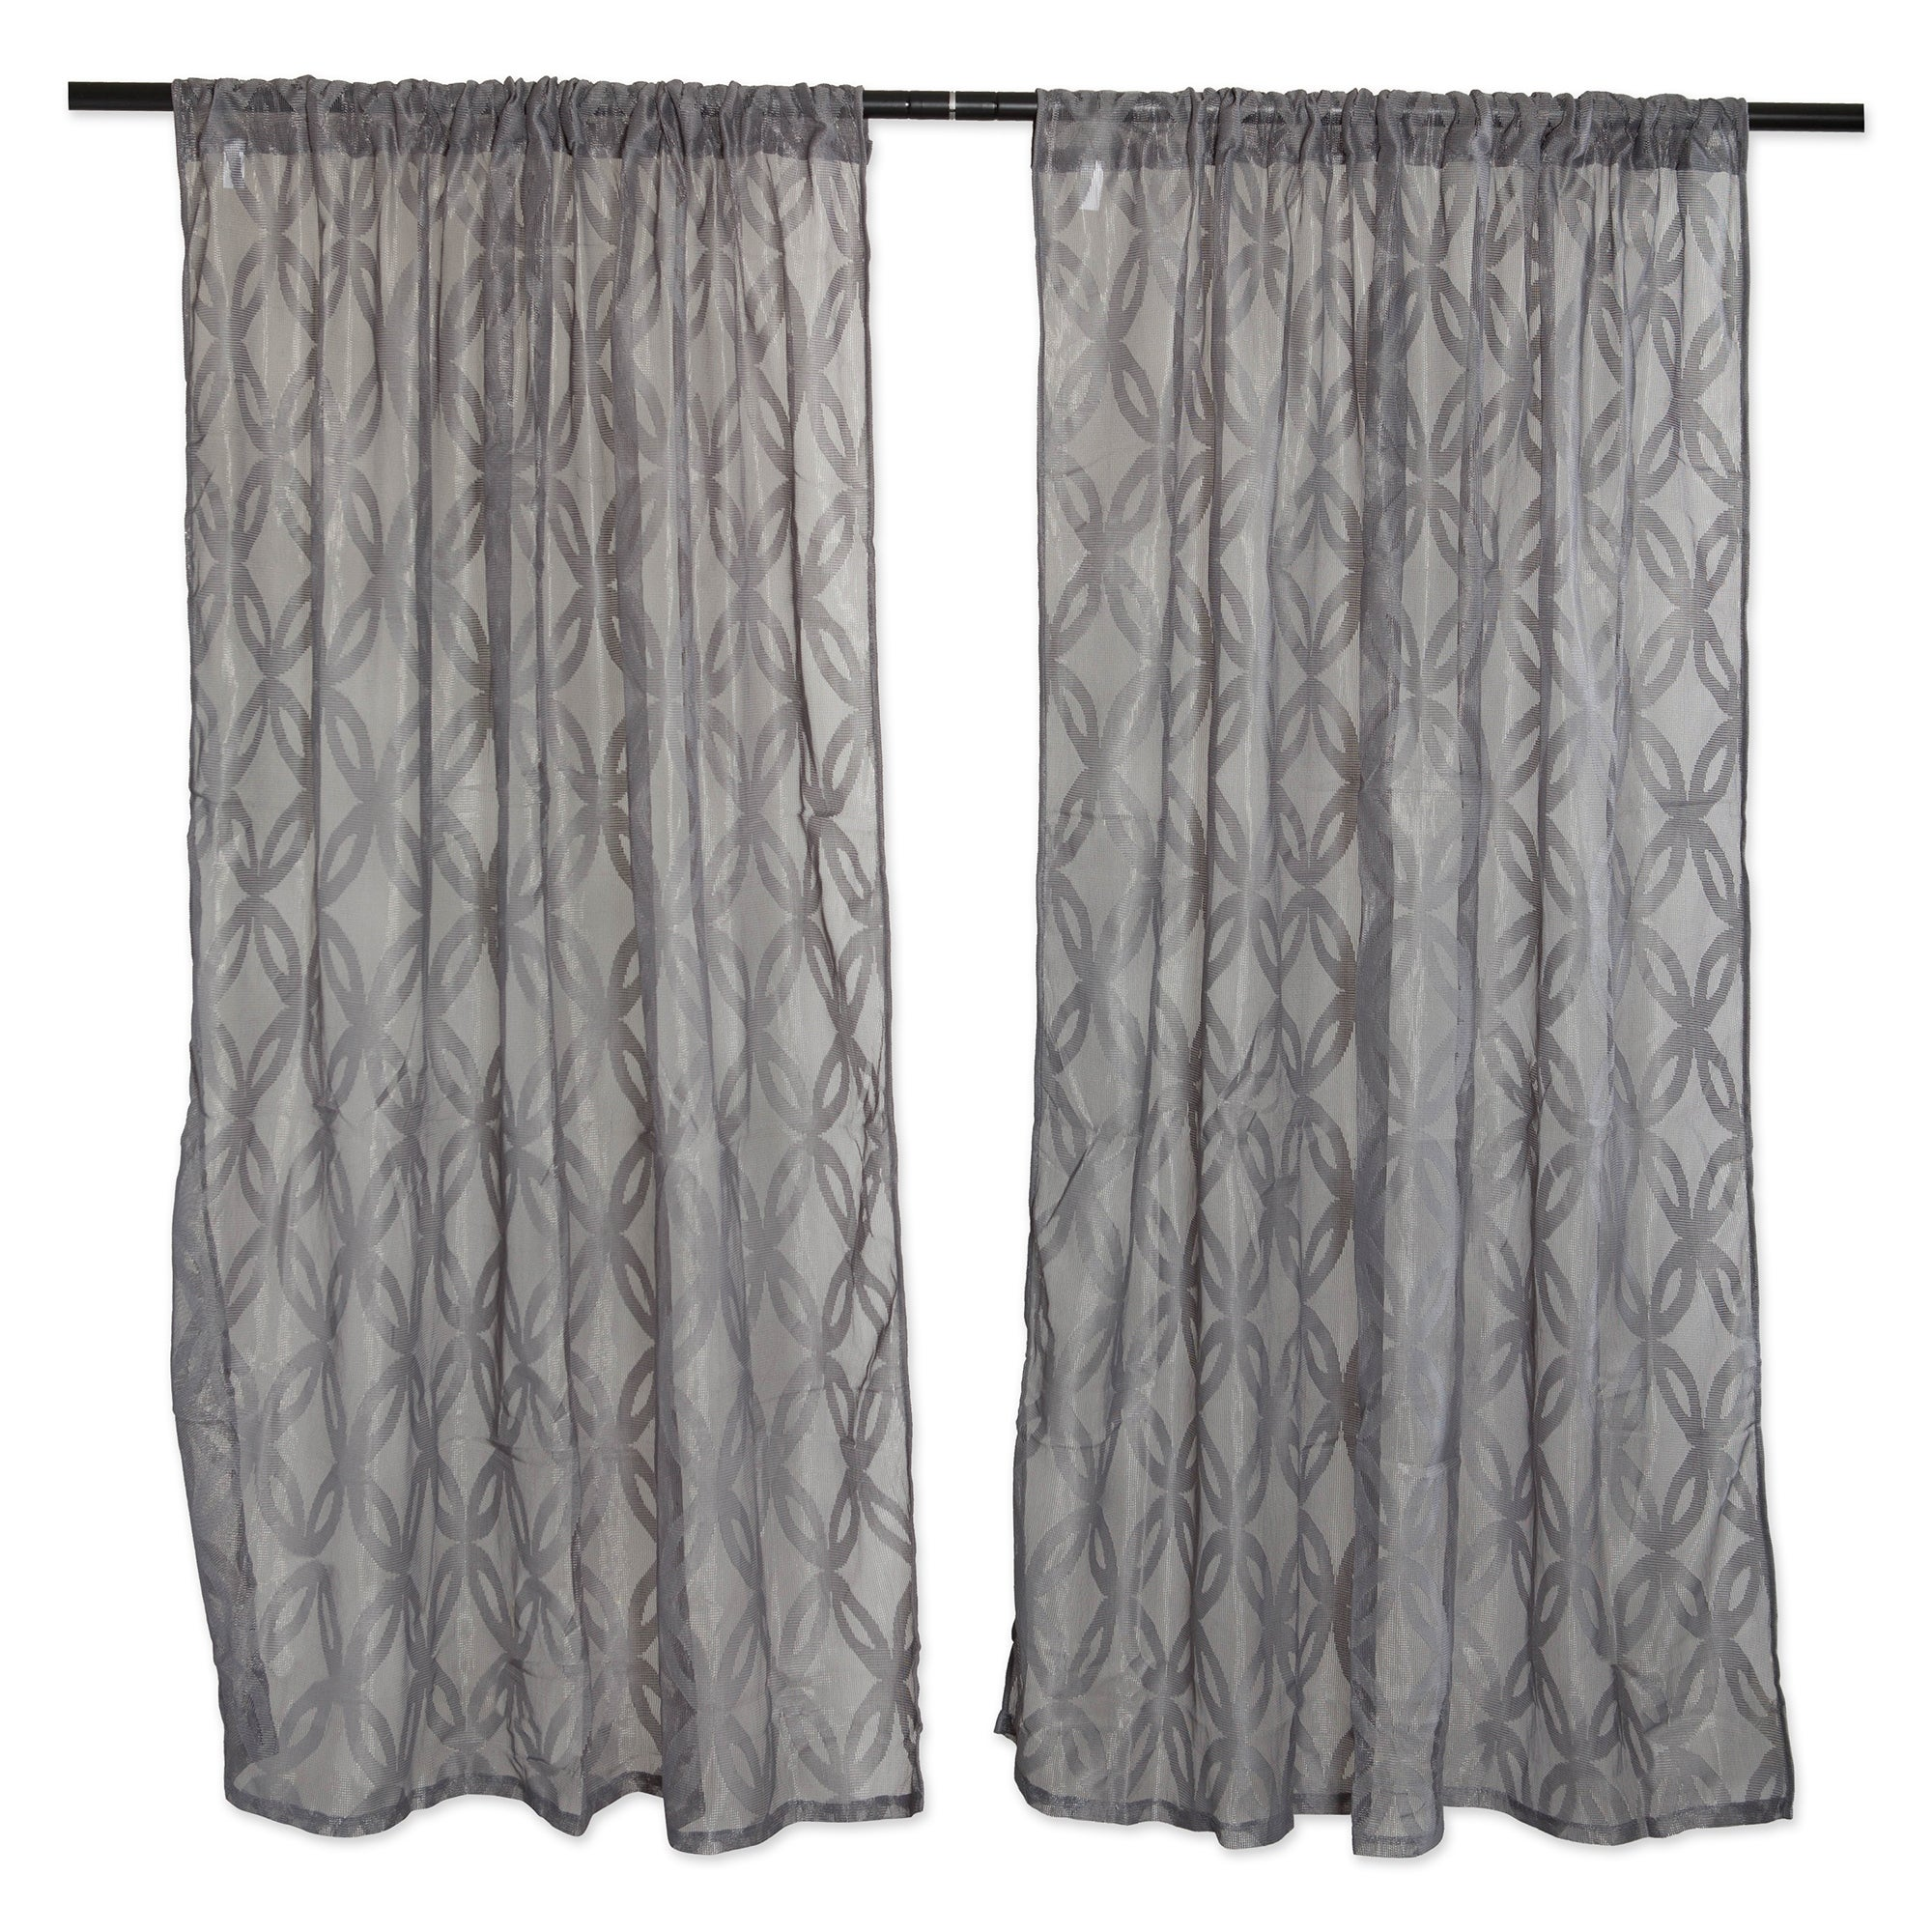 Set Of 2 Gray Modern Rustic Lace Window Curtains 50 X 63 Overstock 31790113